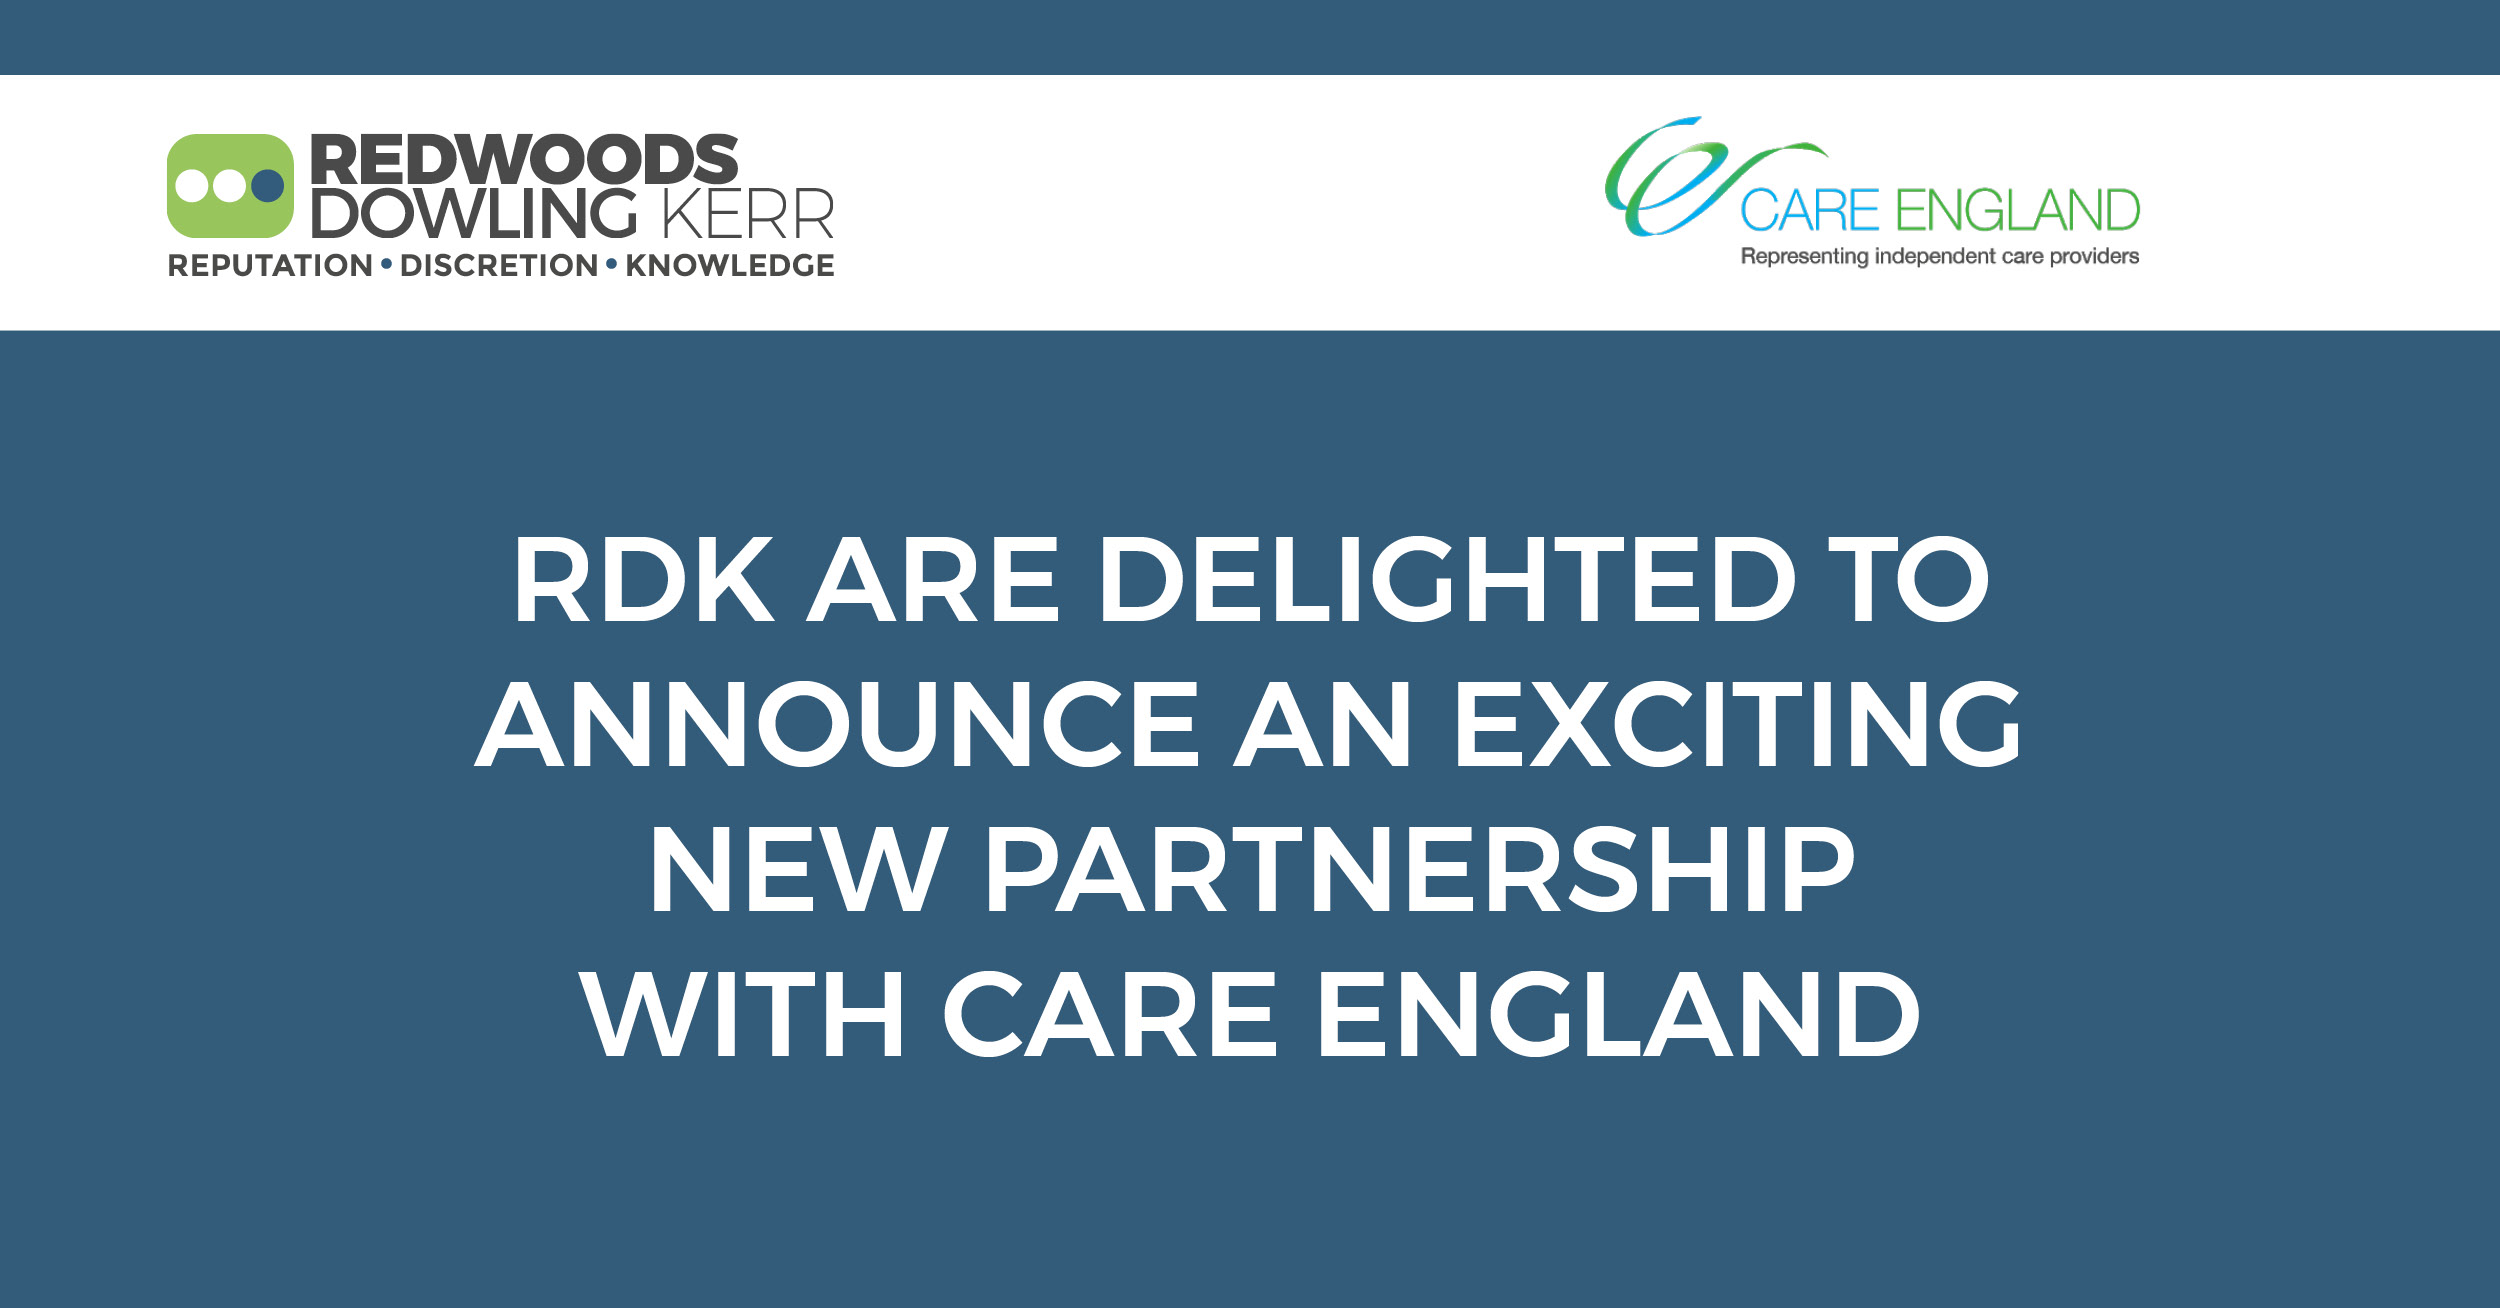 Redwoods Dowling Kerr, the UK's complete healthcare broker is now an official supporter member of Care England.